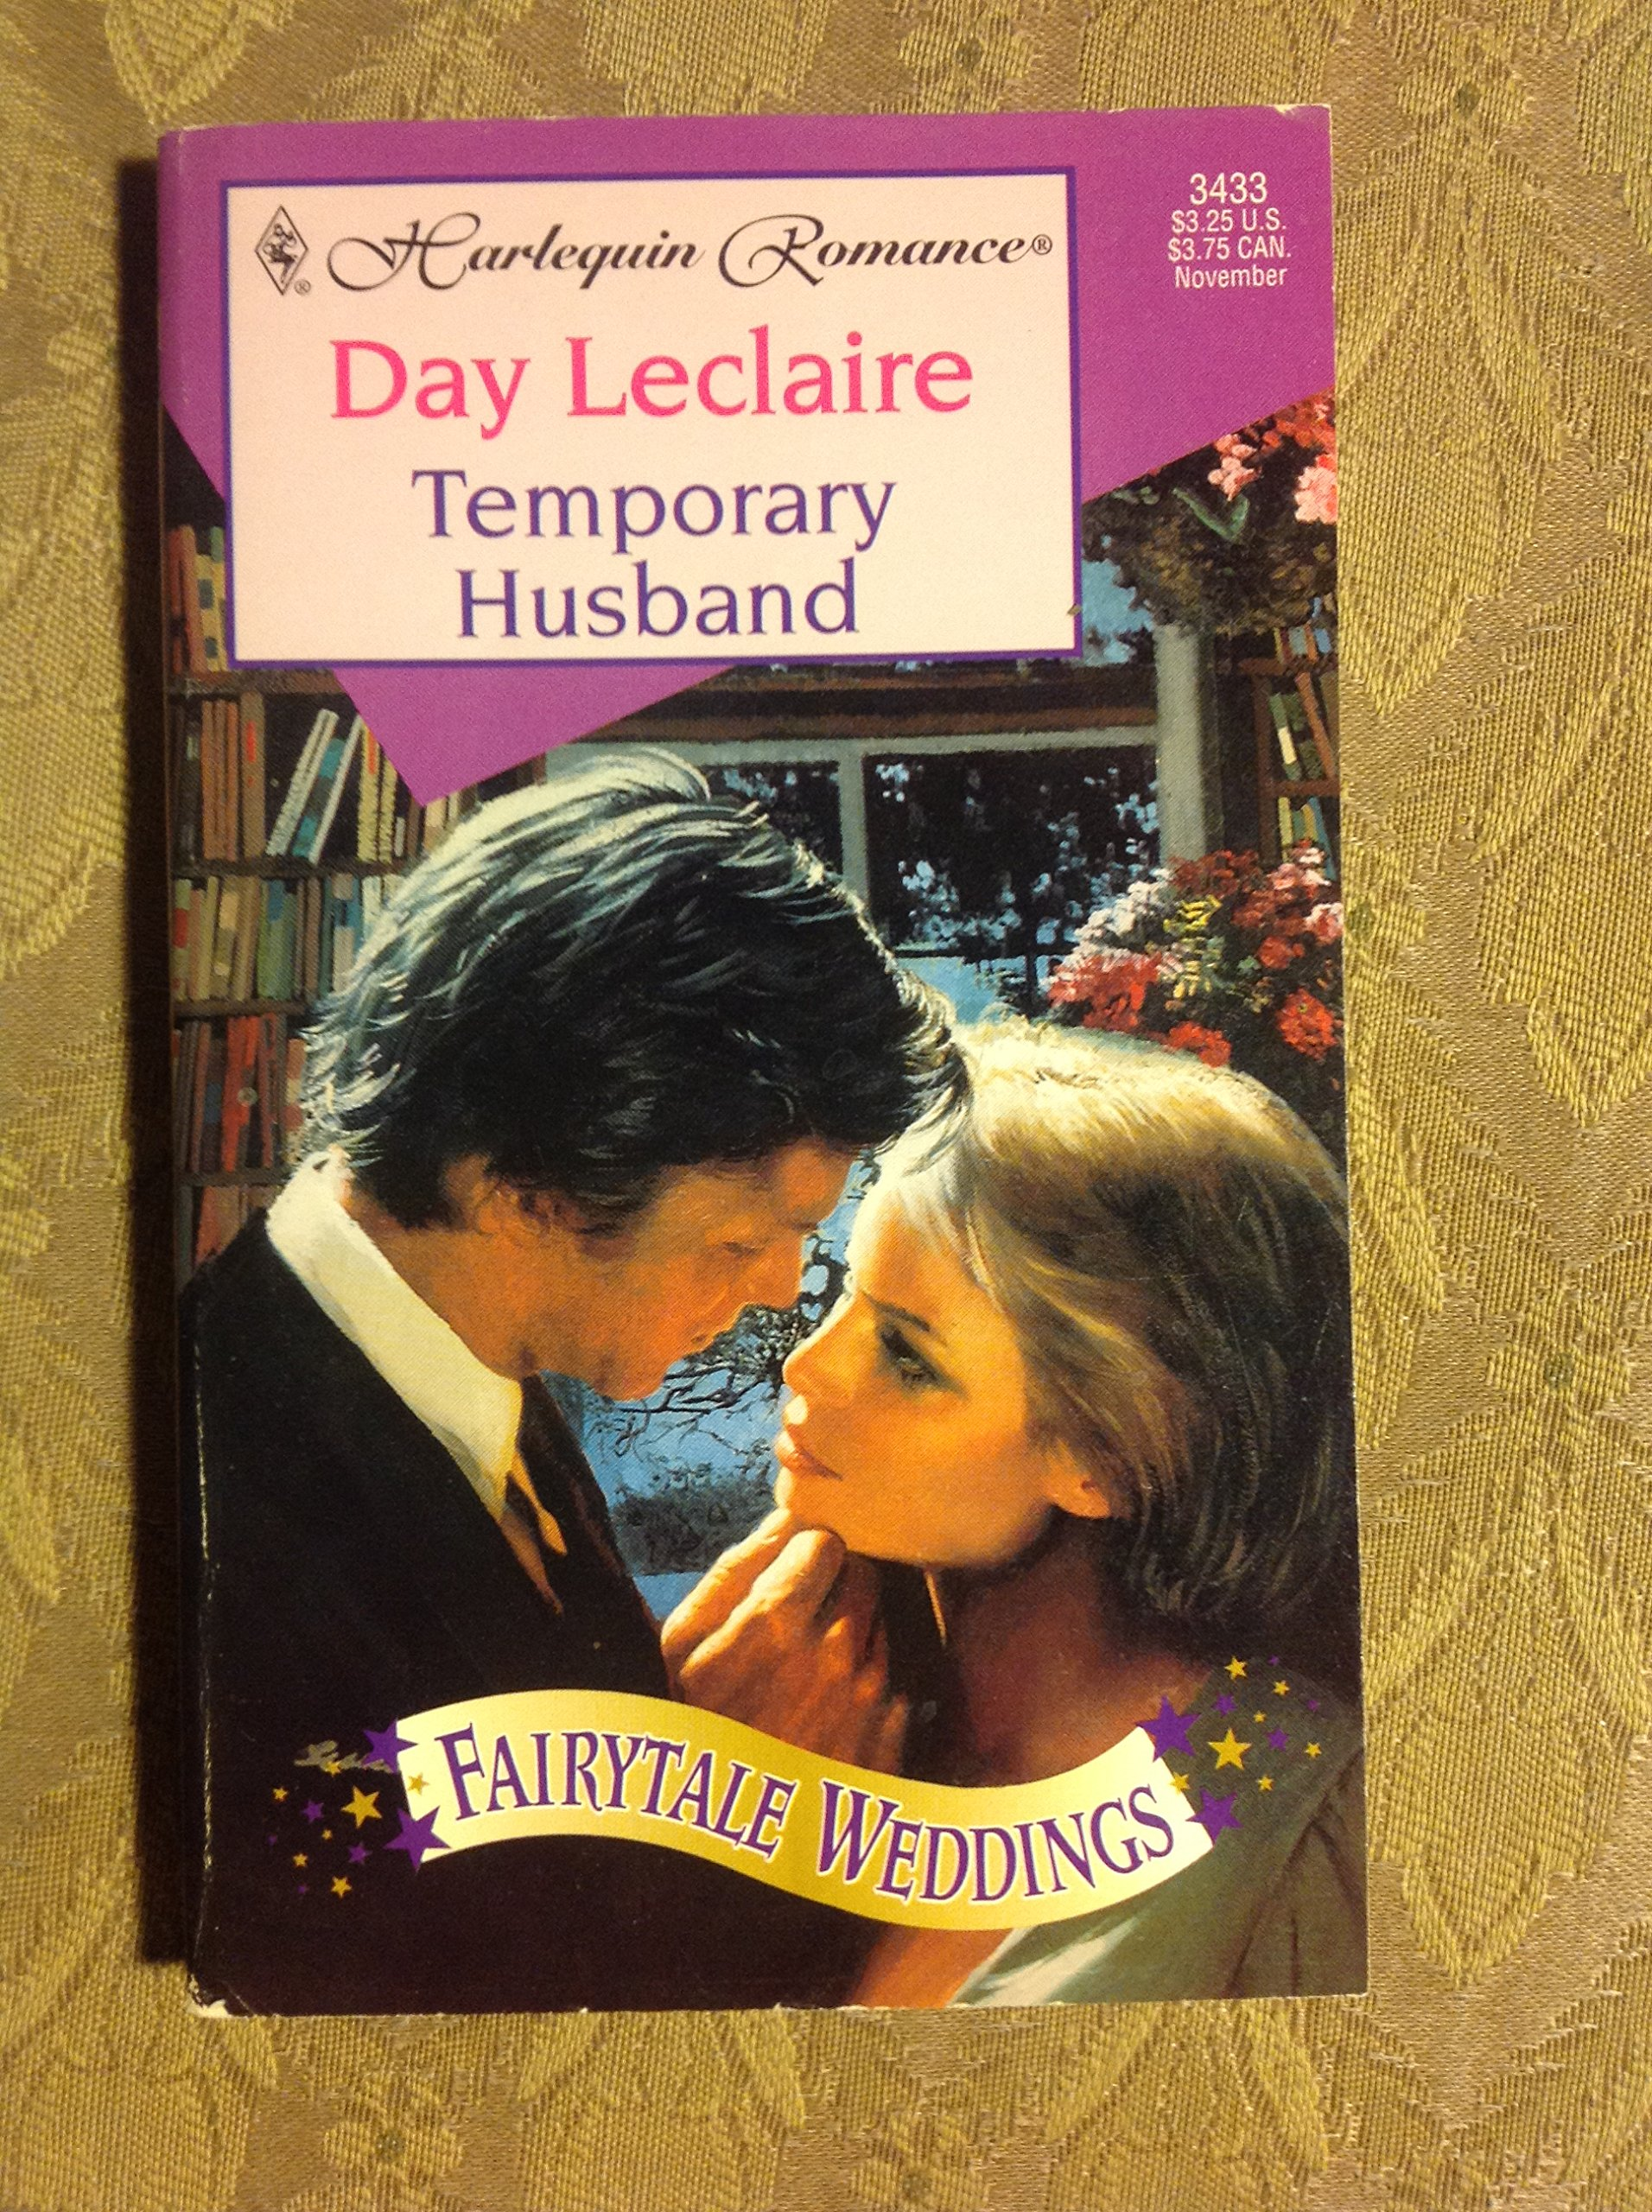 Temporary Husband Fairytale Weddings Trilogy Day Leclaire